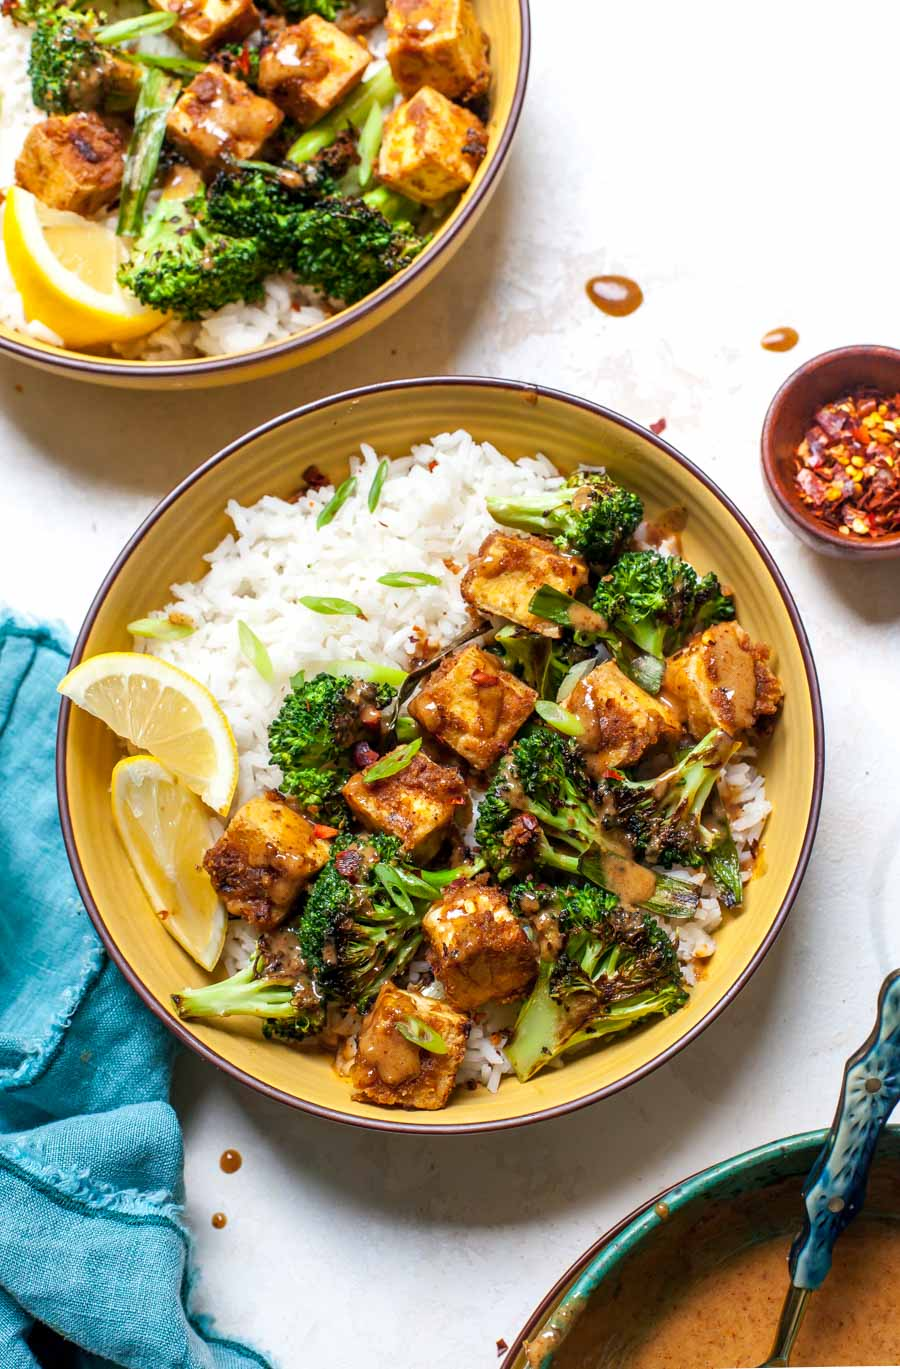 Crispy Tofu with Broccoli, Scallions, Rice and Almond Butter Sauce